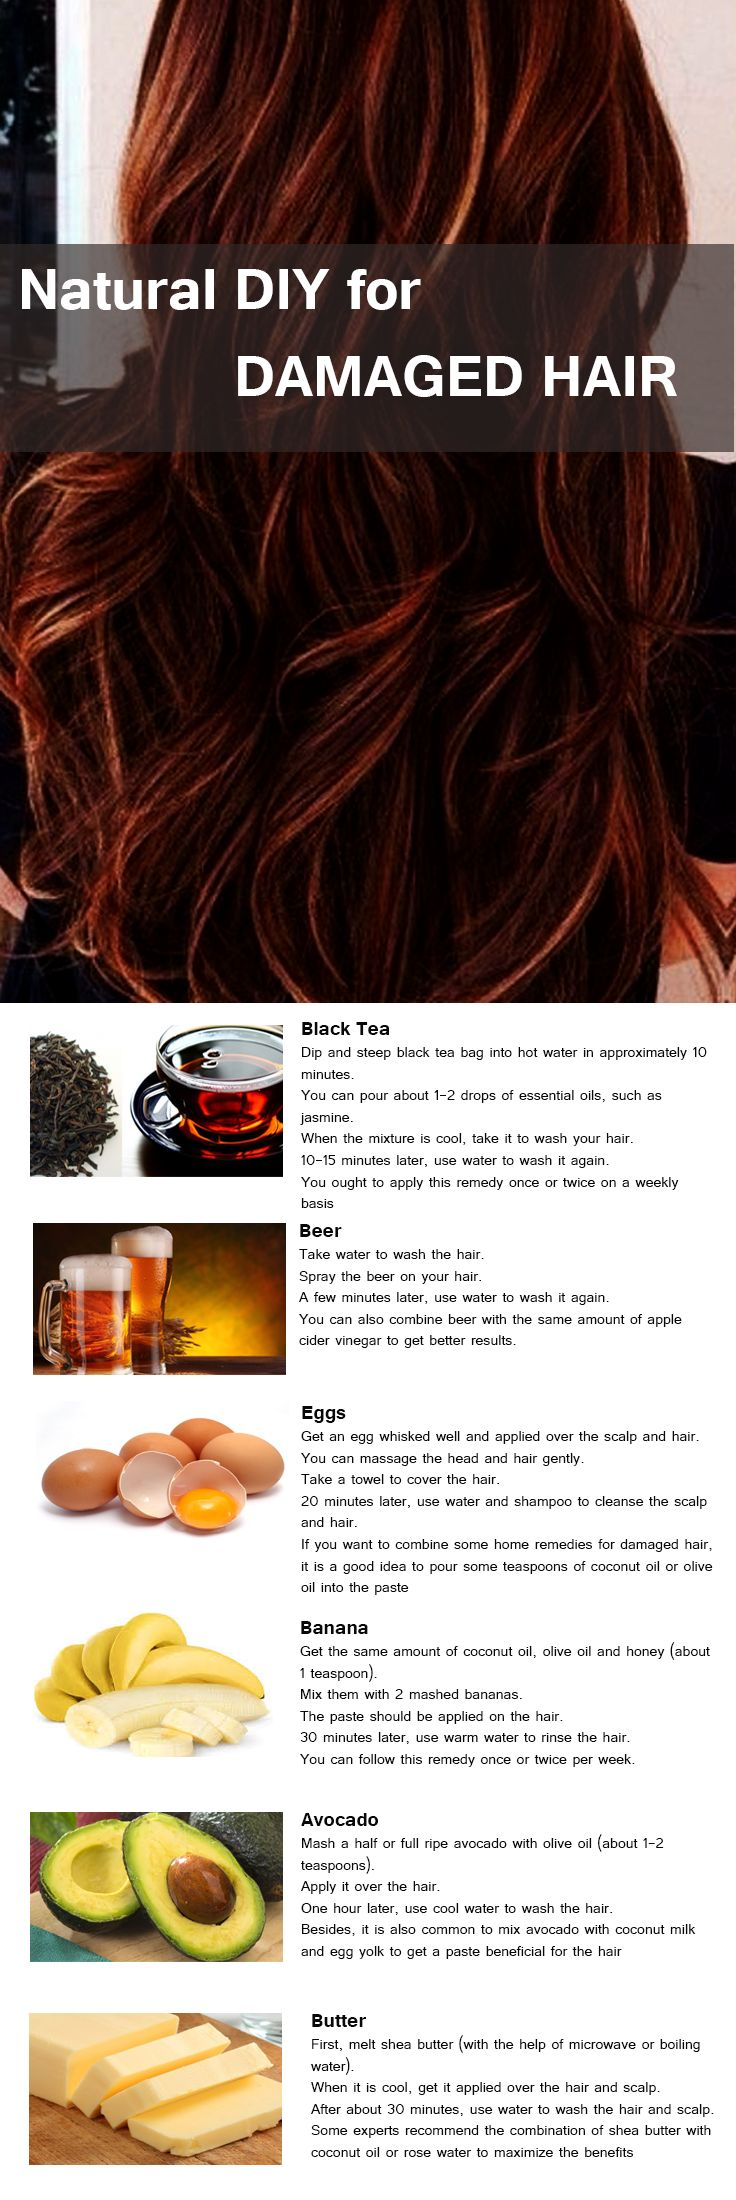 All Natural DIY masks for Damaged hair.